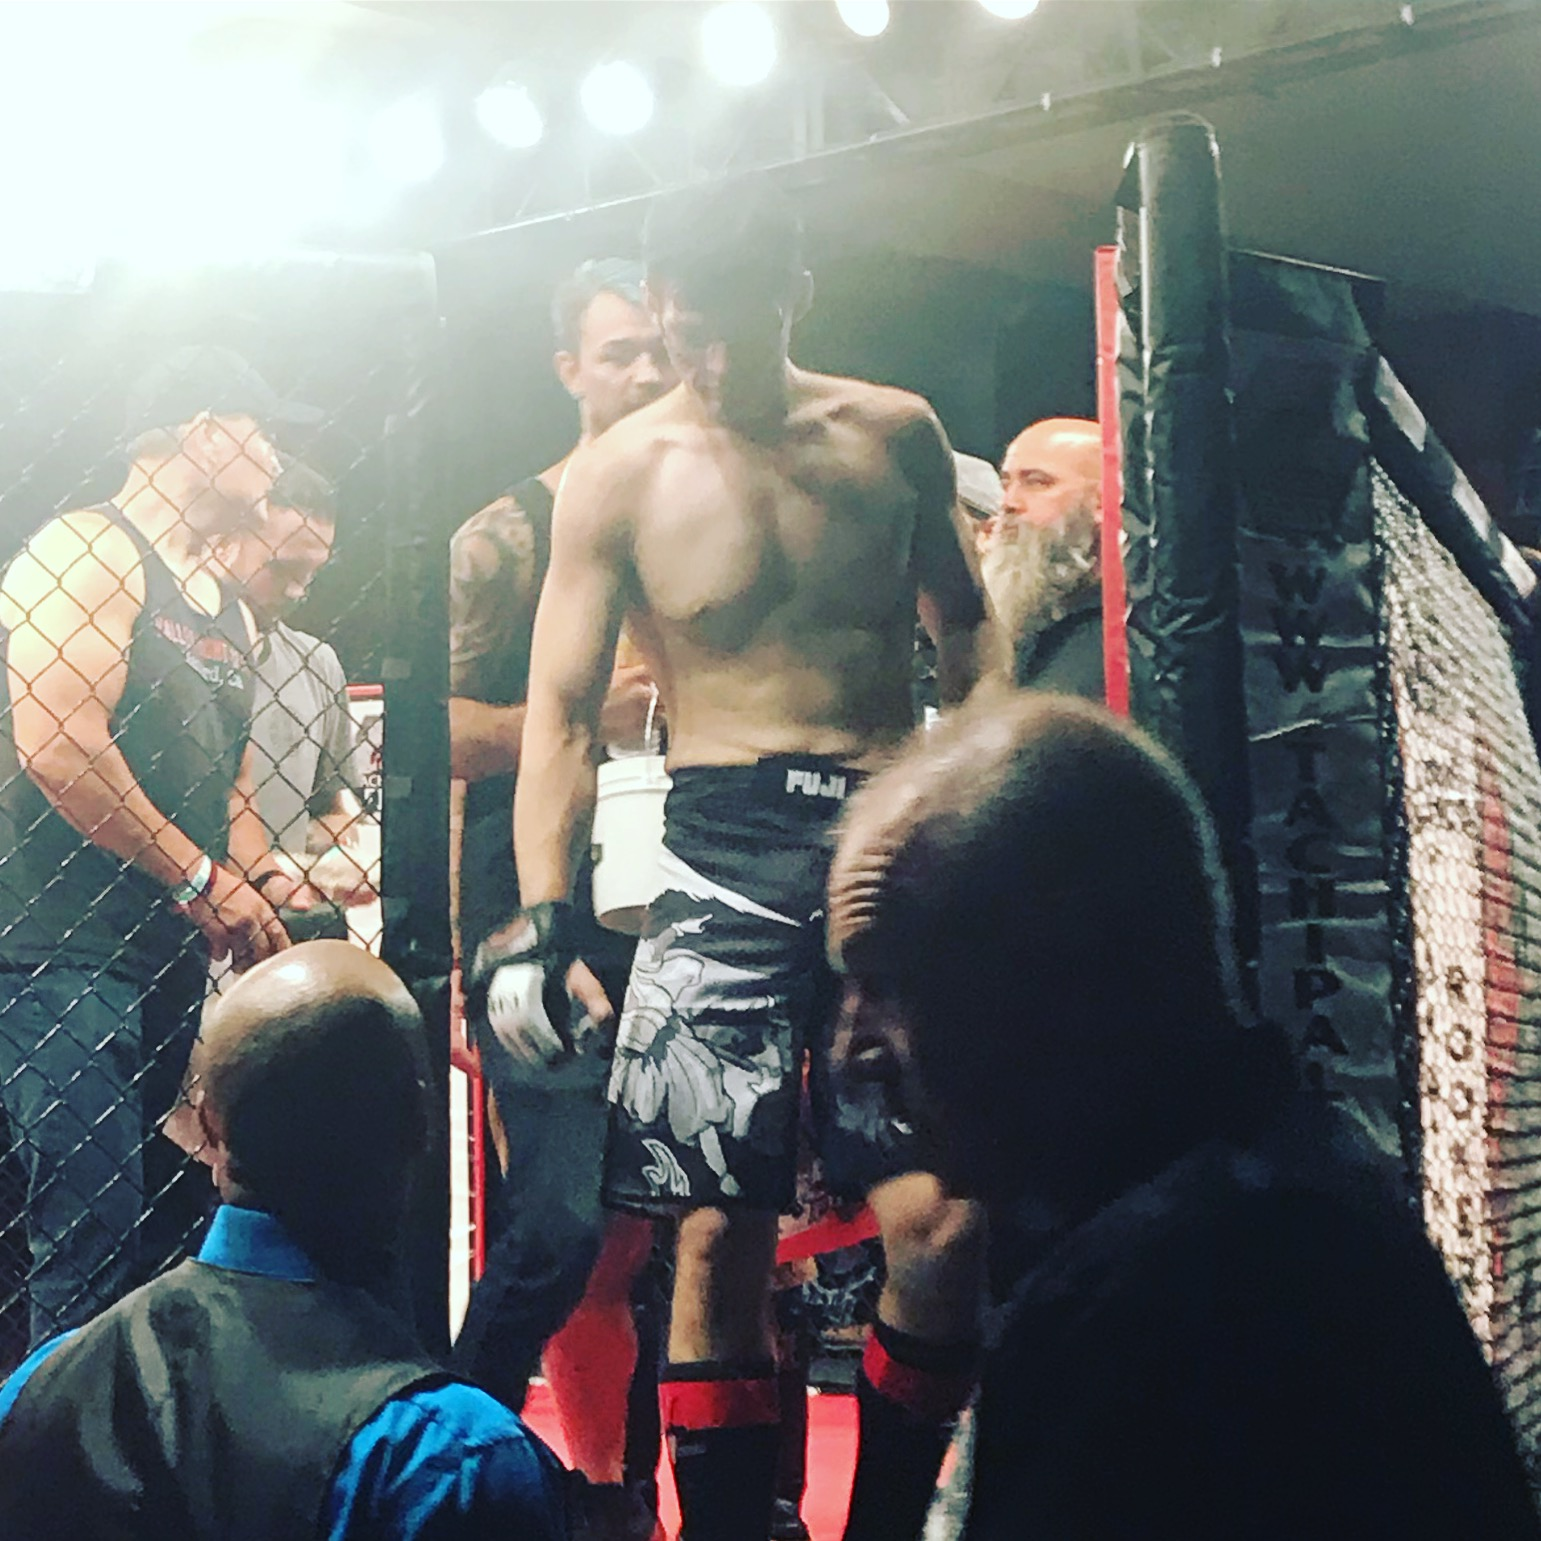 Ryan Ballin  exiting the cage at Tachi Palace Fights: Prospects 2